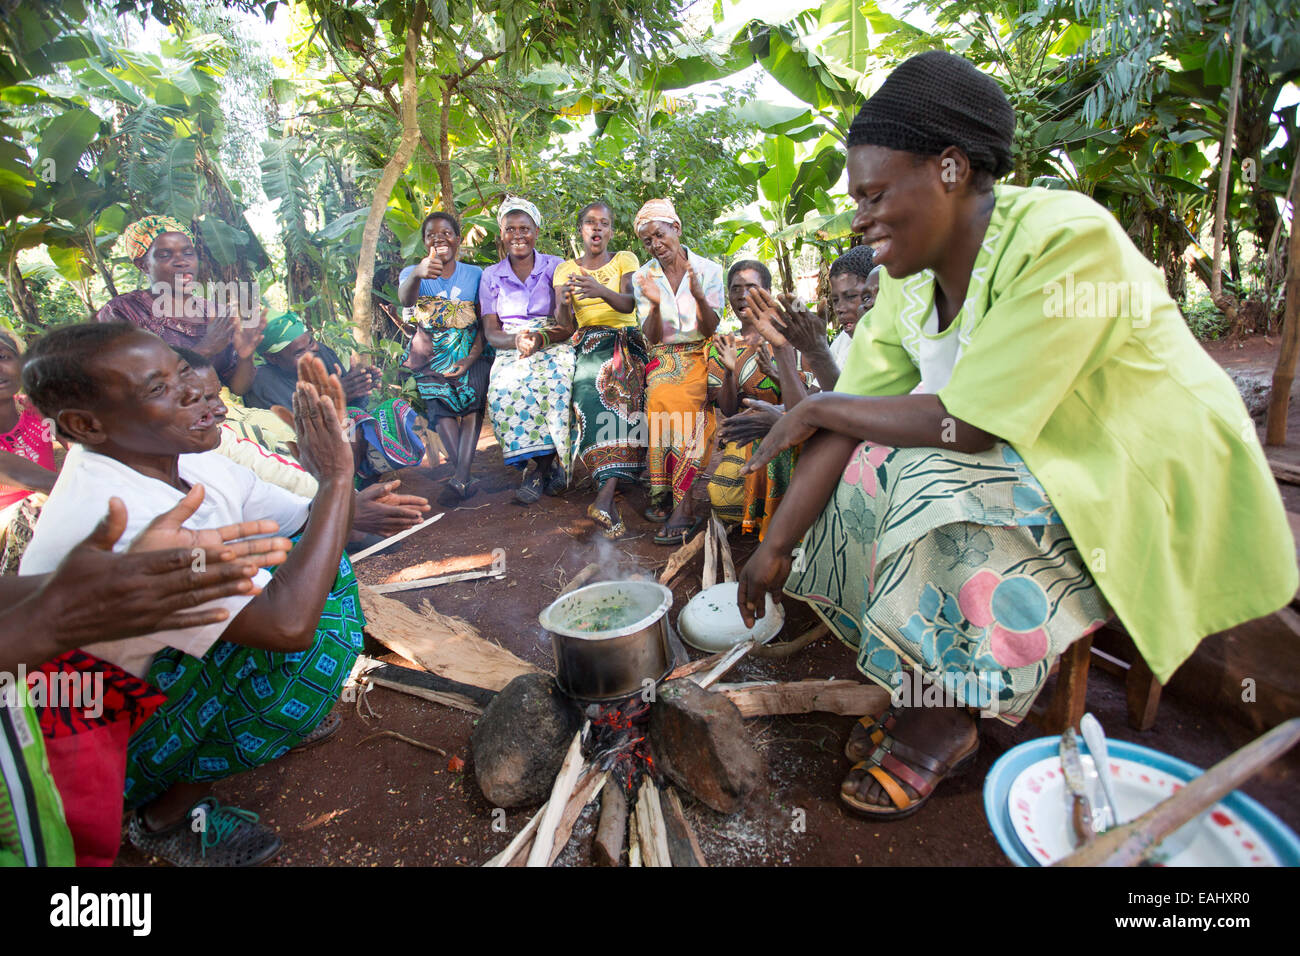 Villagers attend a cooking and nutrition demonstration in Mulanje District, Malawi. - Stock Image